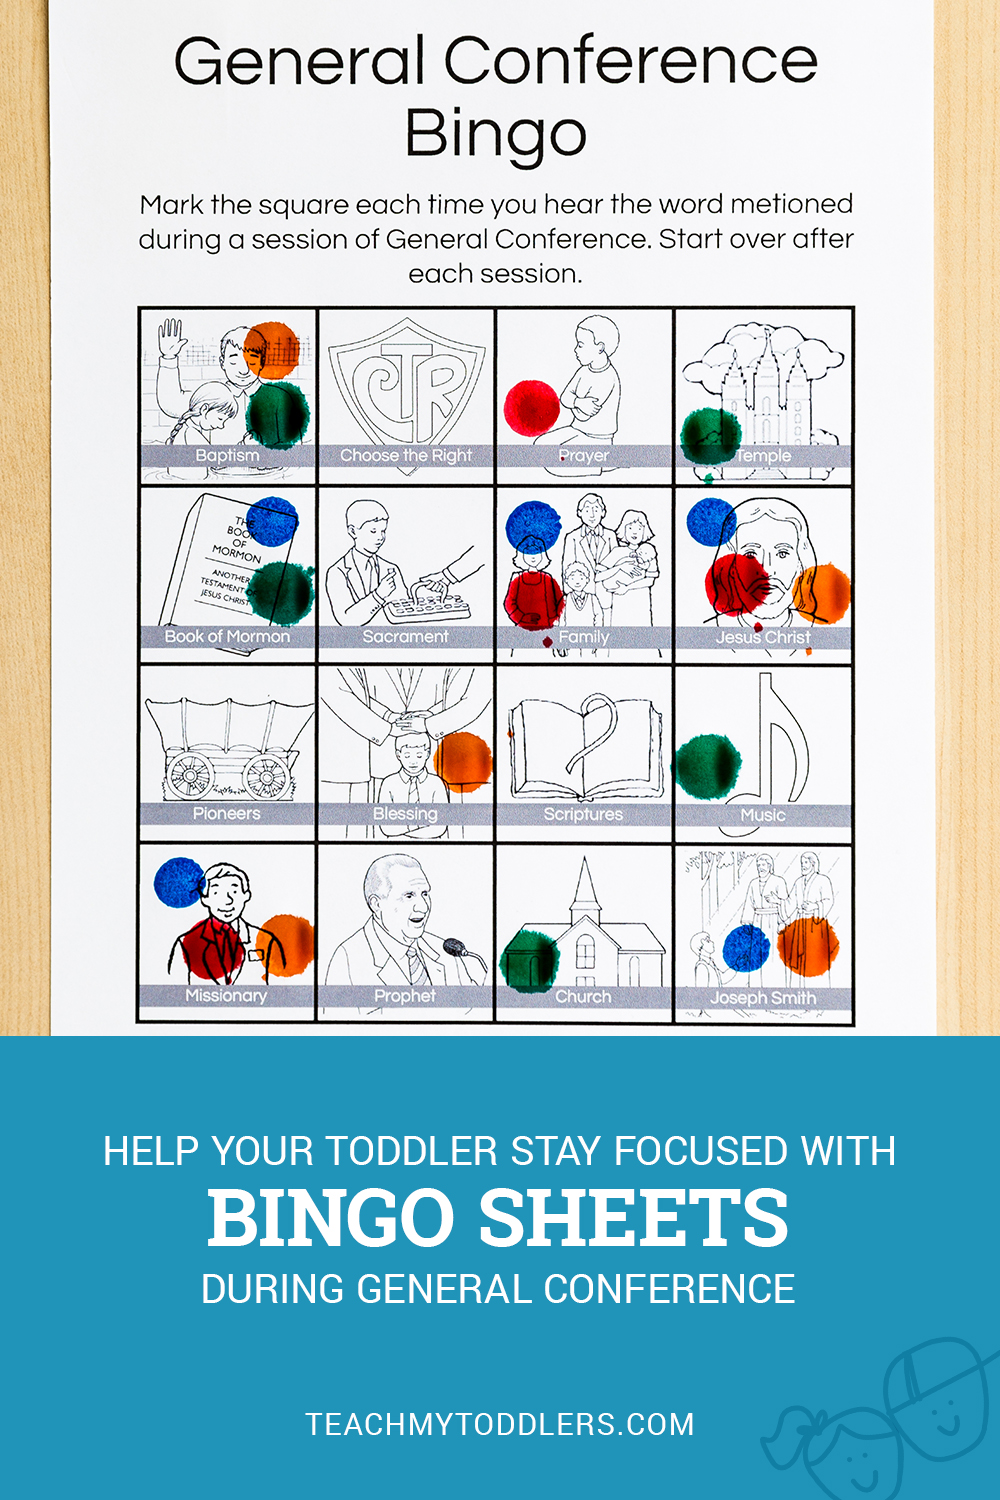 Help your toddlers stay focused with this General Conference Bingo Activity